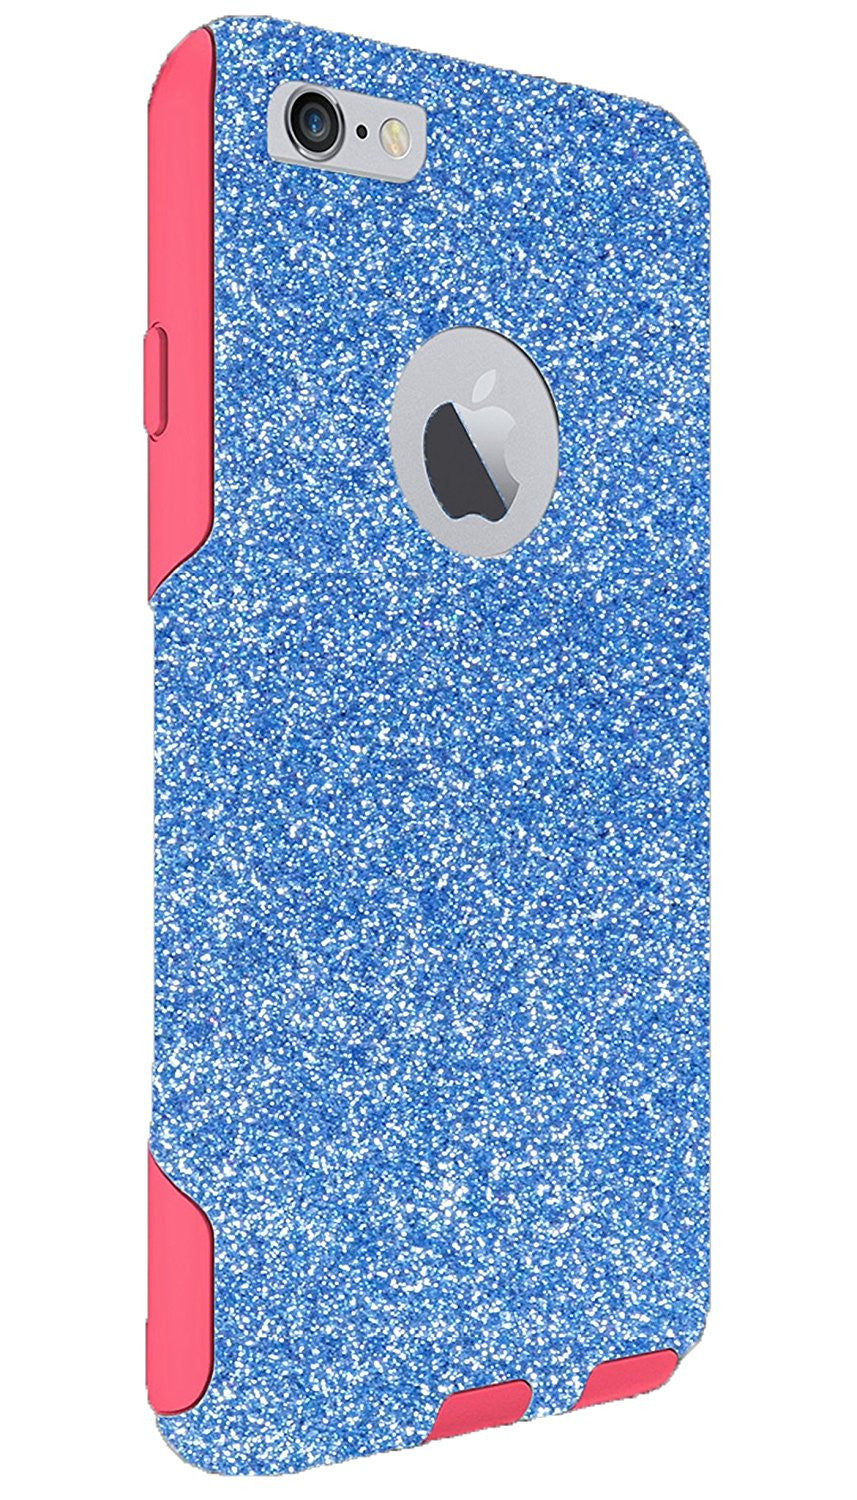 iphone 6s cases otterbox